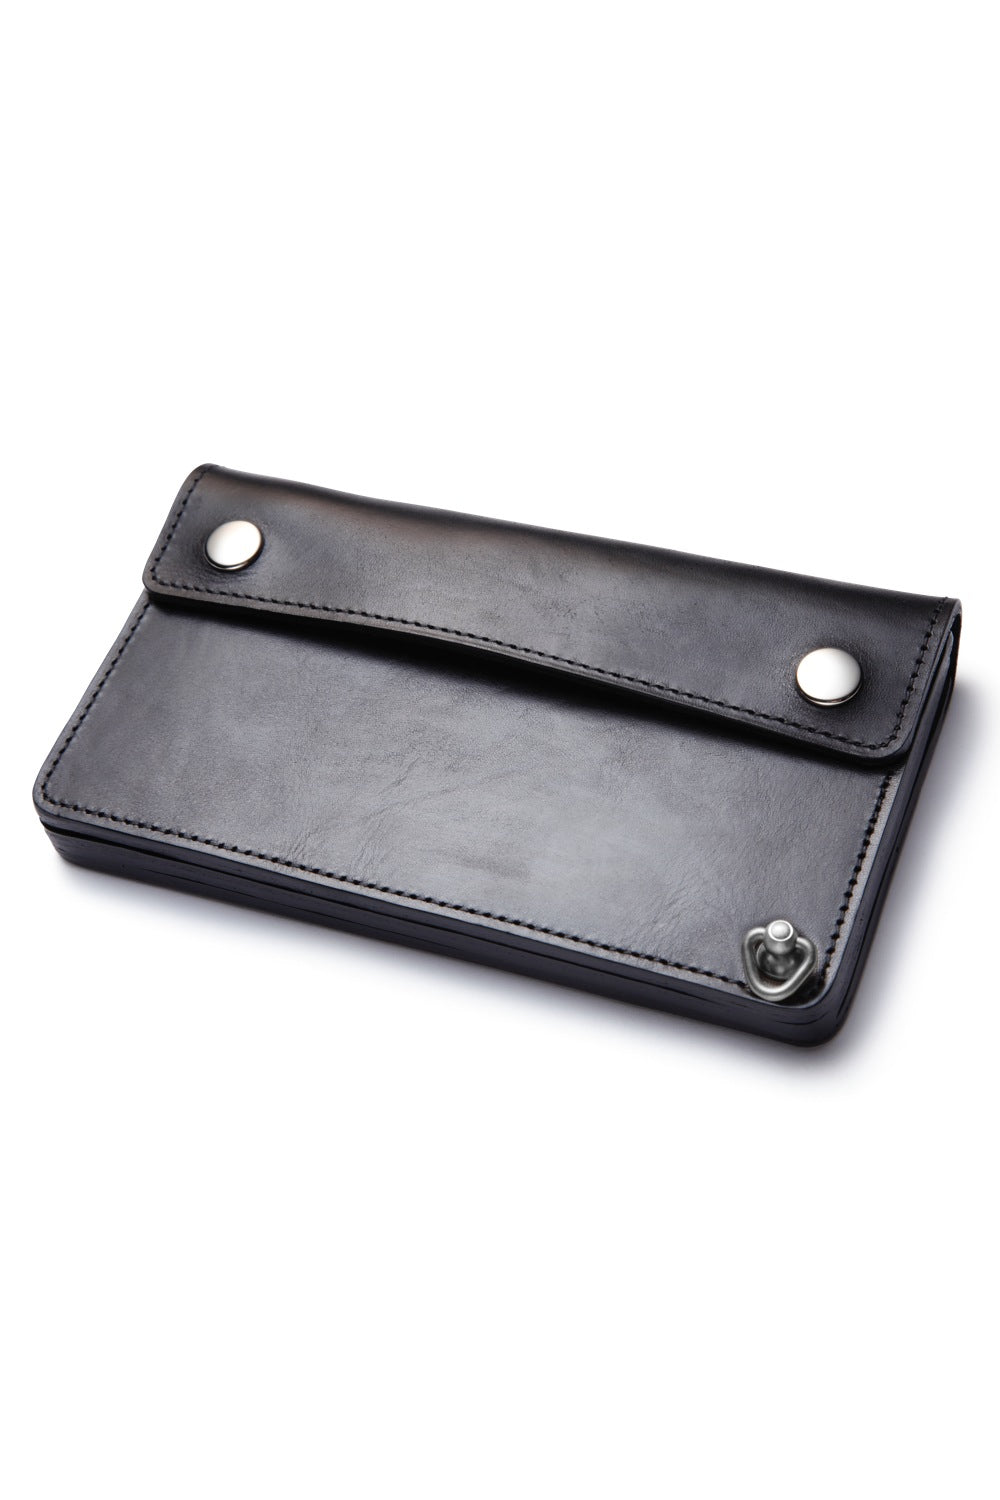 Lot.628 Tracker Wallet -Black×Nickel-